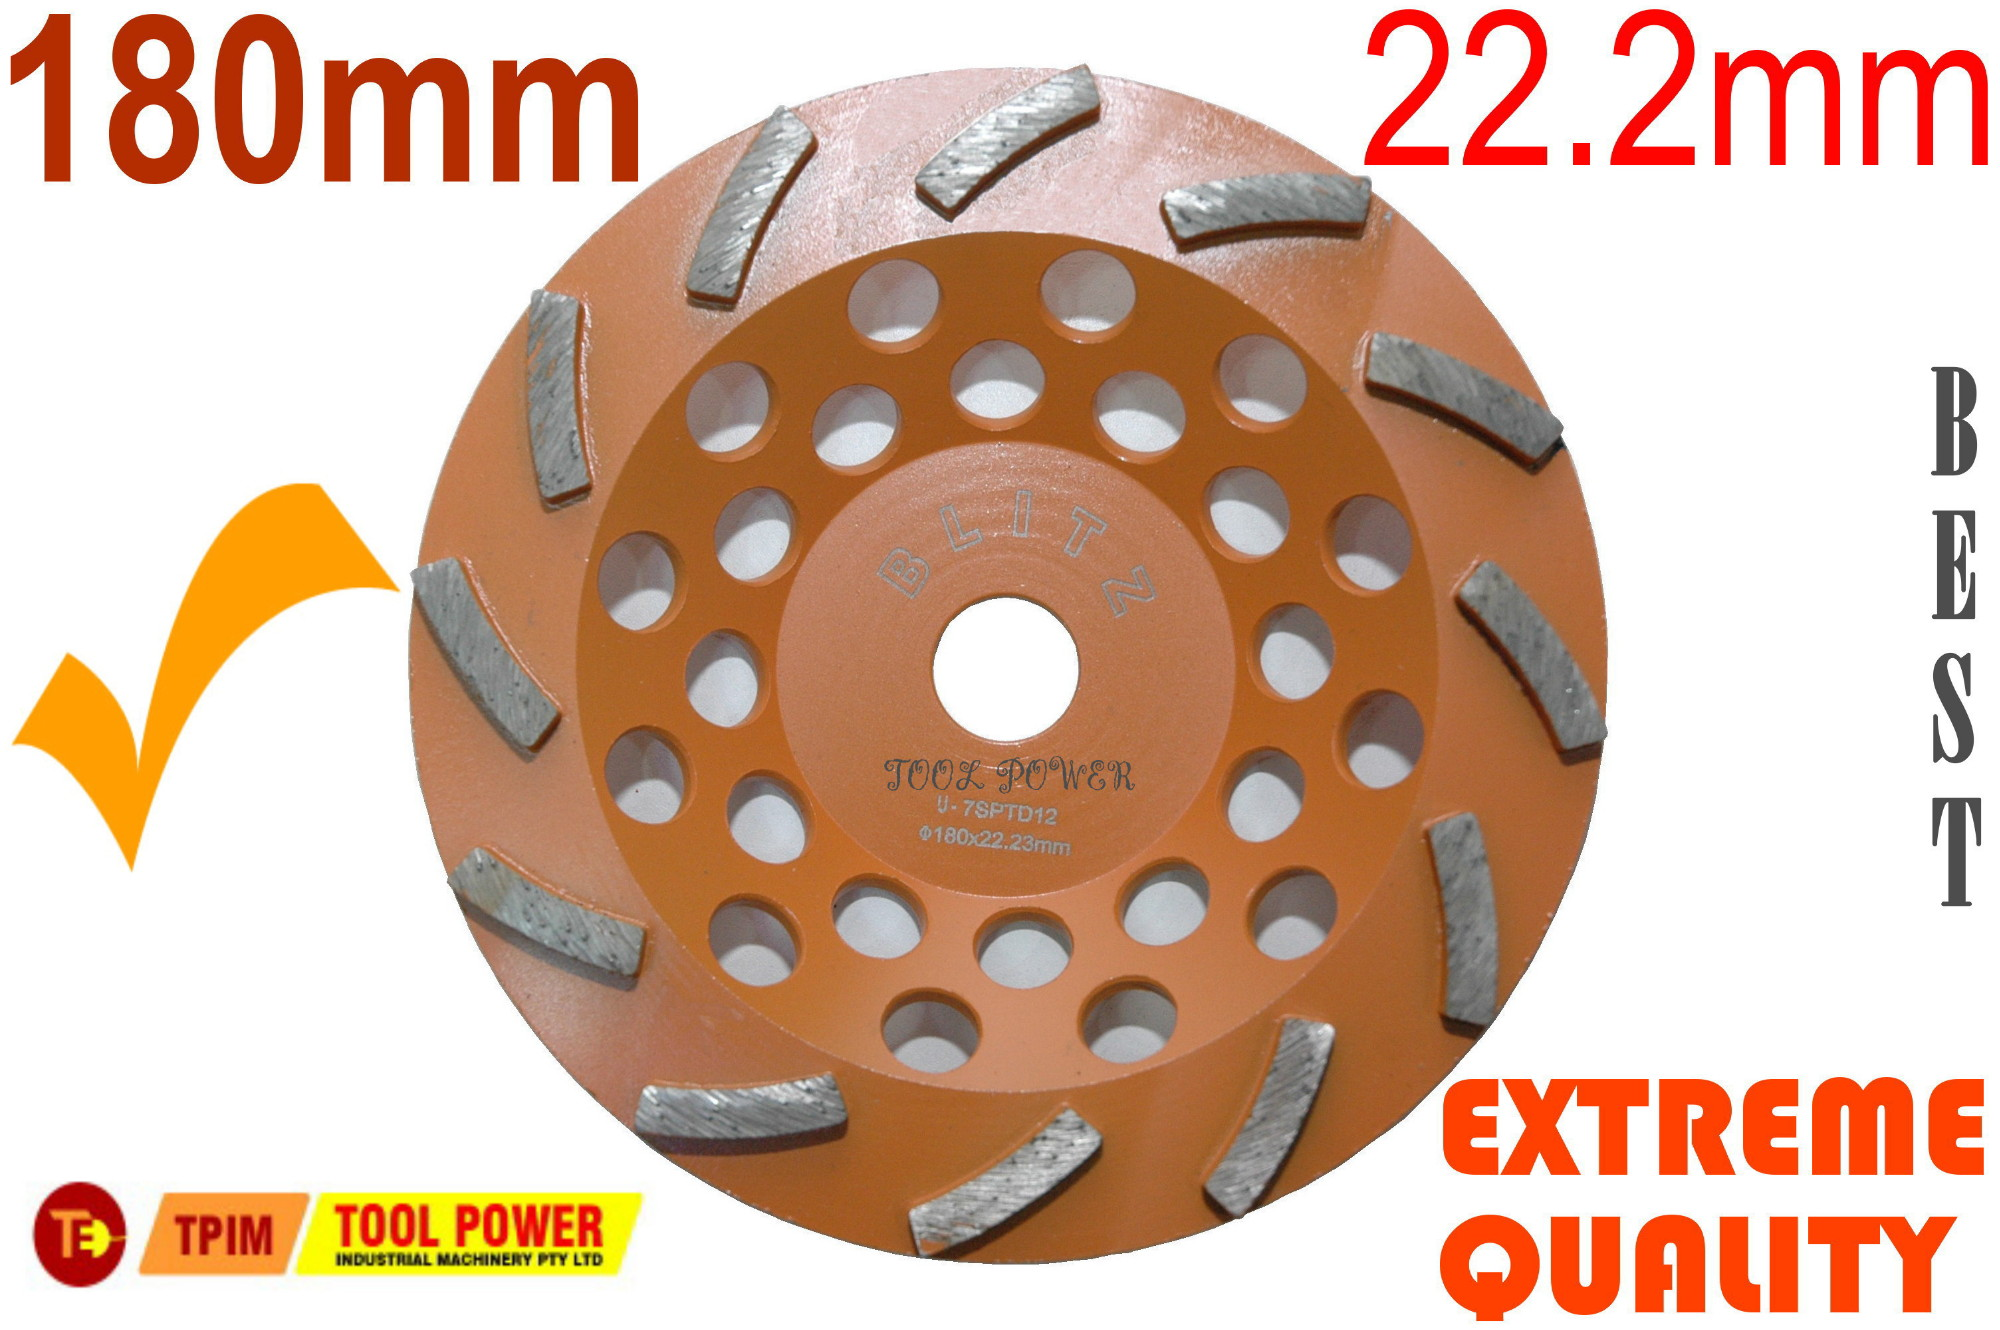 concrete grinding wheel 180 mm by Tool Power